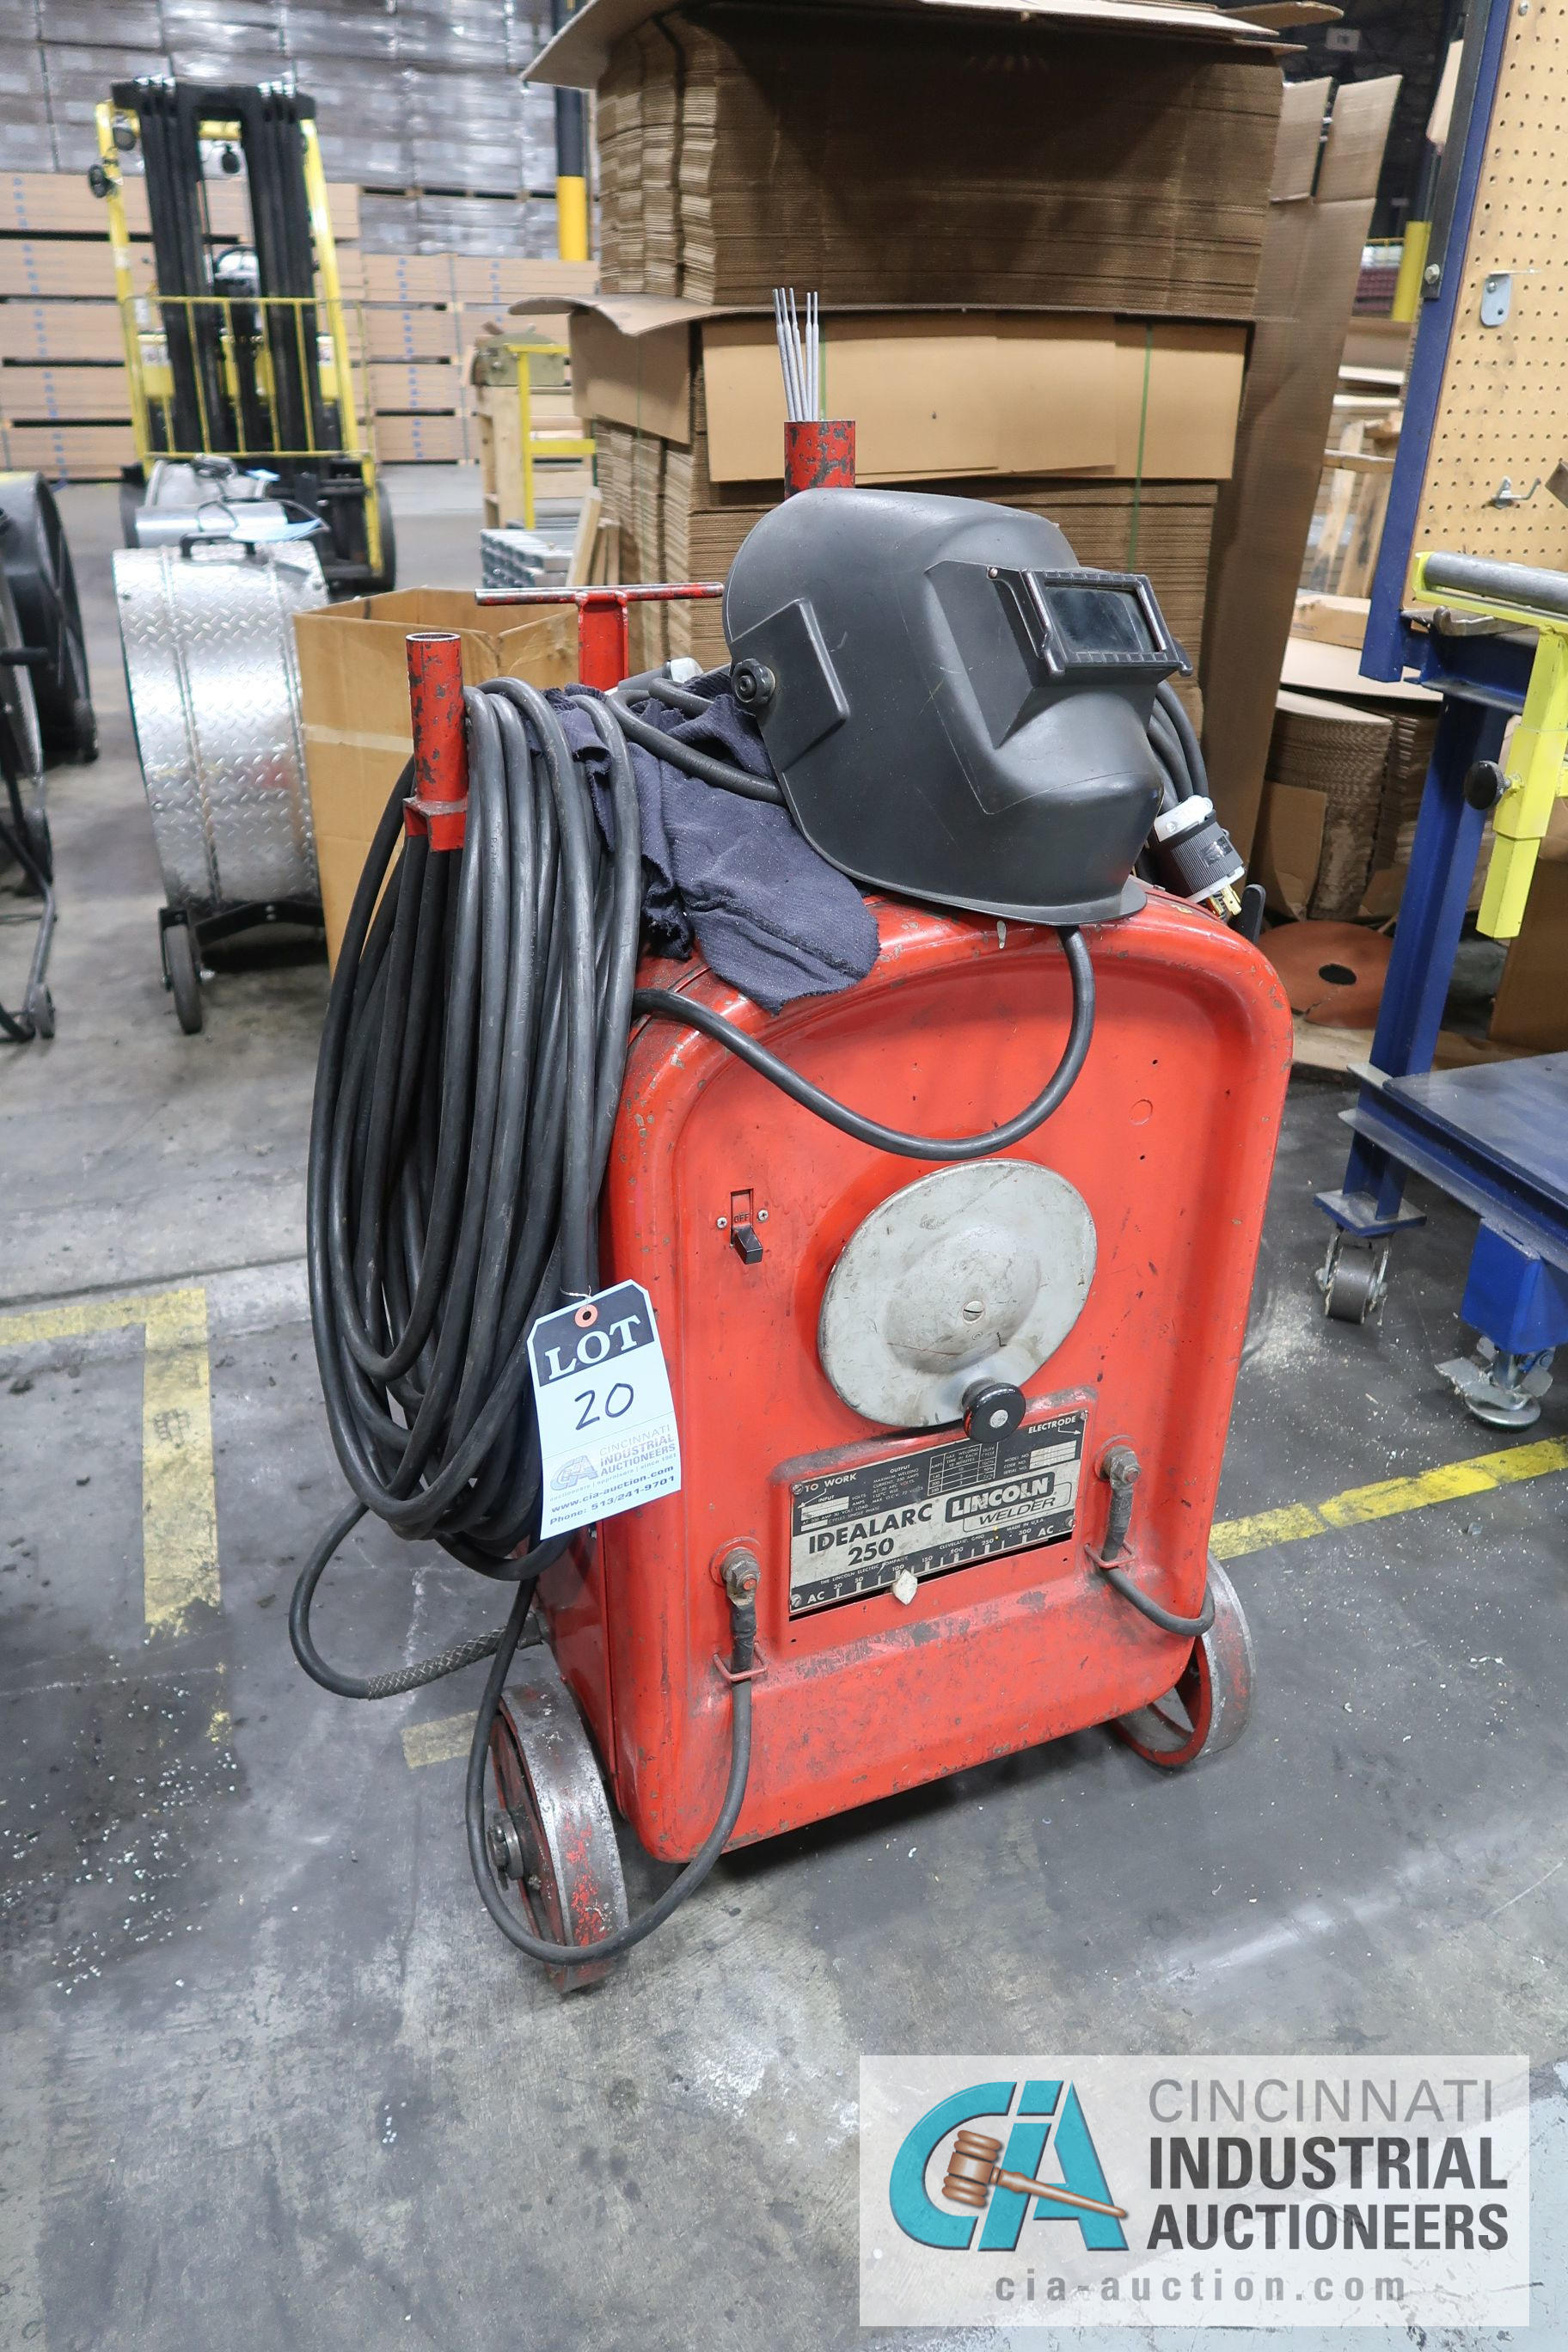 200 AMP LINCOLN IDEALARC 250 WELDER